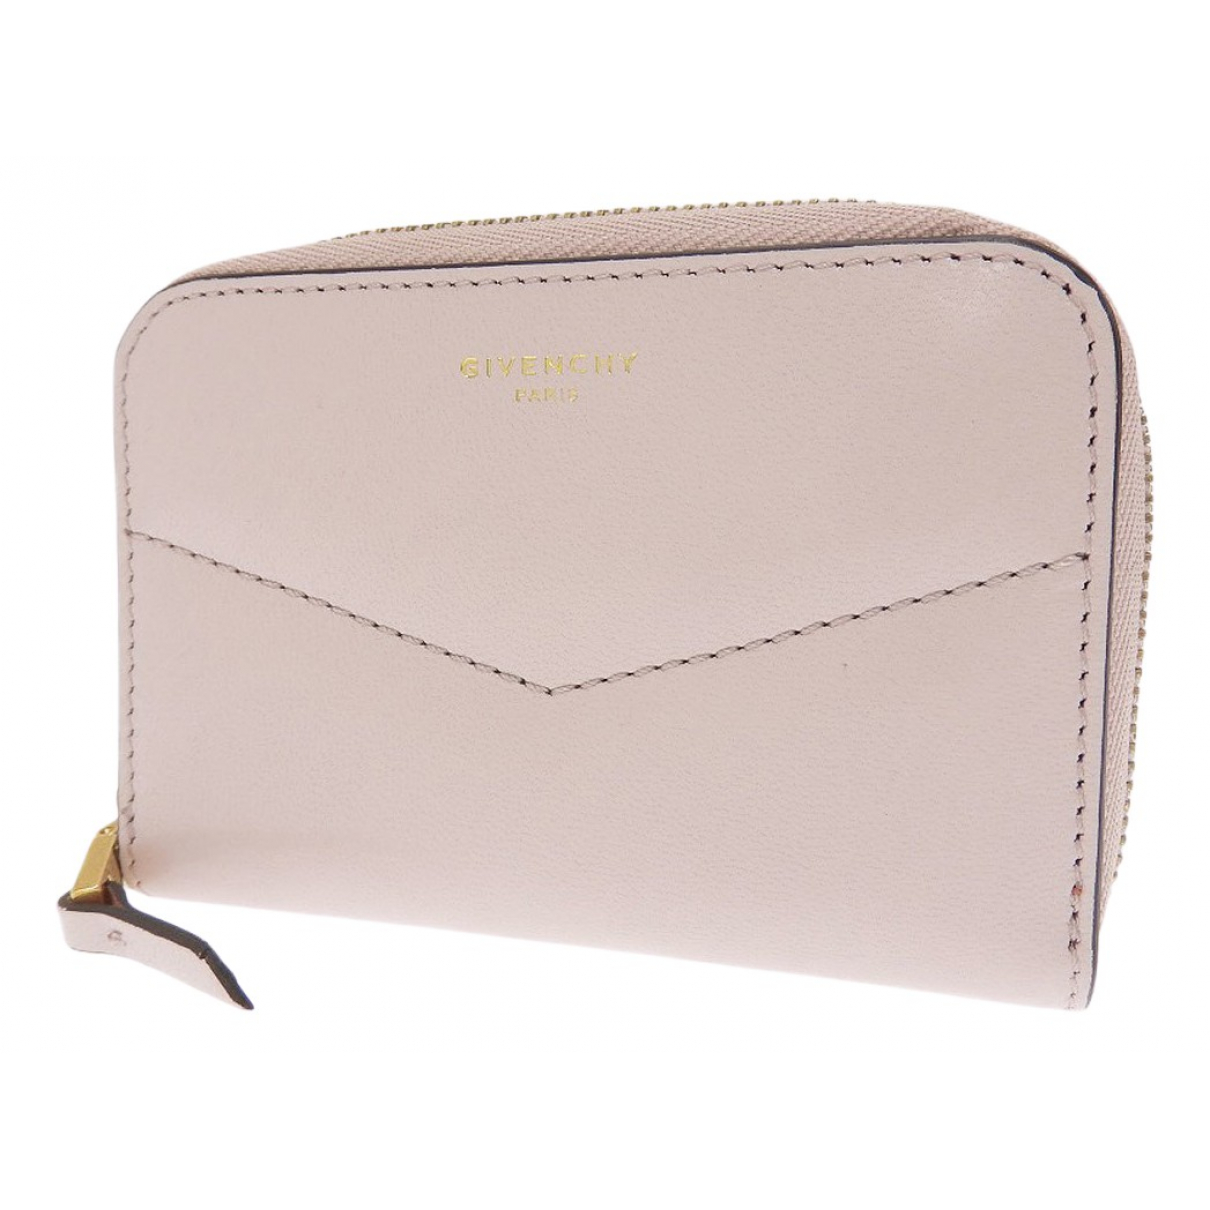 Givenchy \N Pink Leather wallet for Women \N